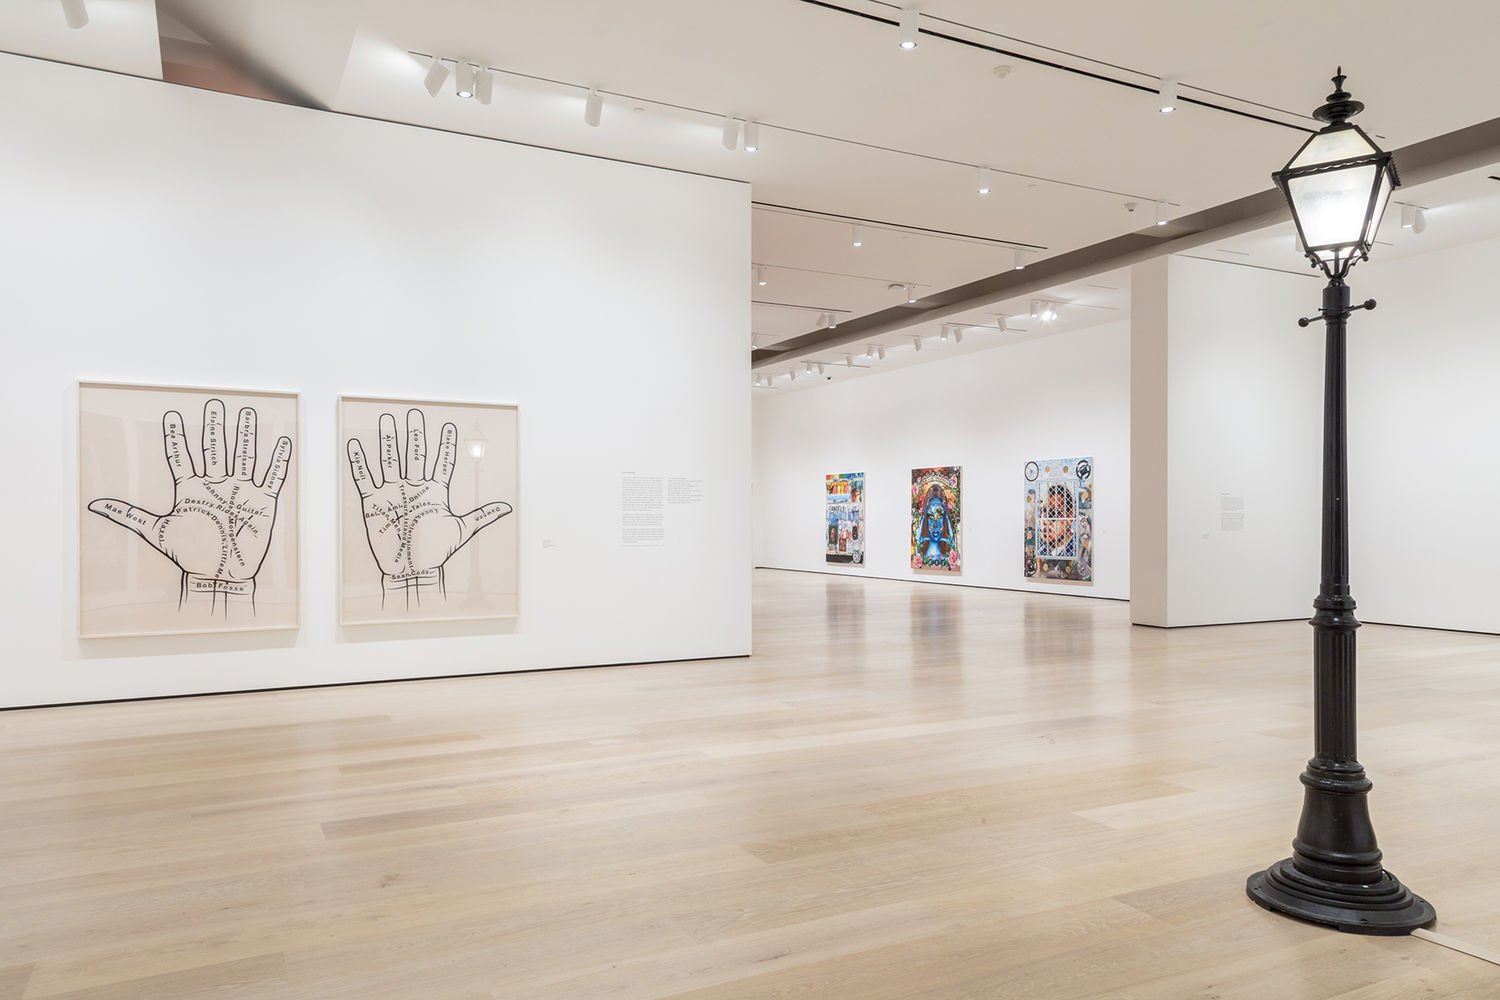 An image inside a white-walled gallery. In the foreground to the right is a black streetlamp. To the left in the middle of the image are two photographs, with a left and right palm in each photo. There are various names written on the palms. In the background are three paintings rendered in an airbrush, lowrider car style.